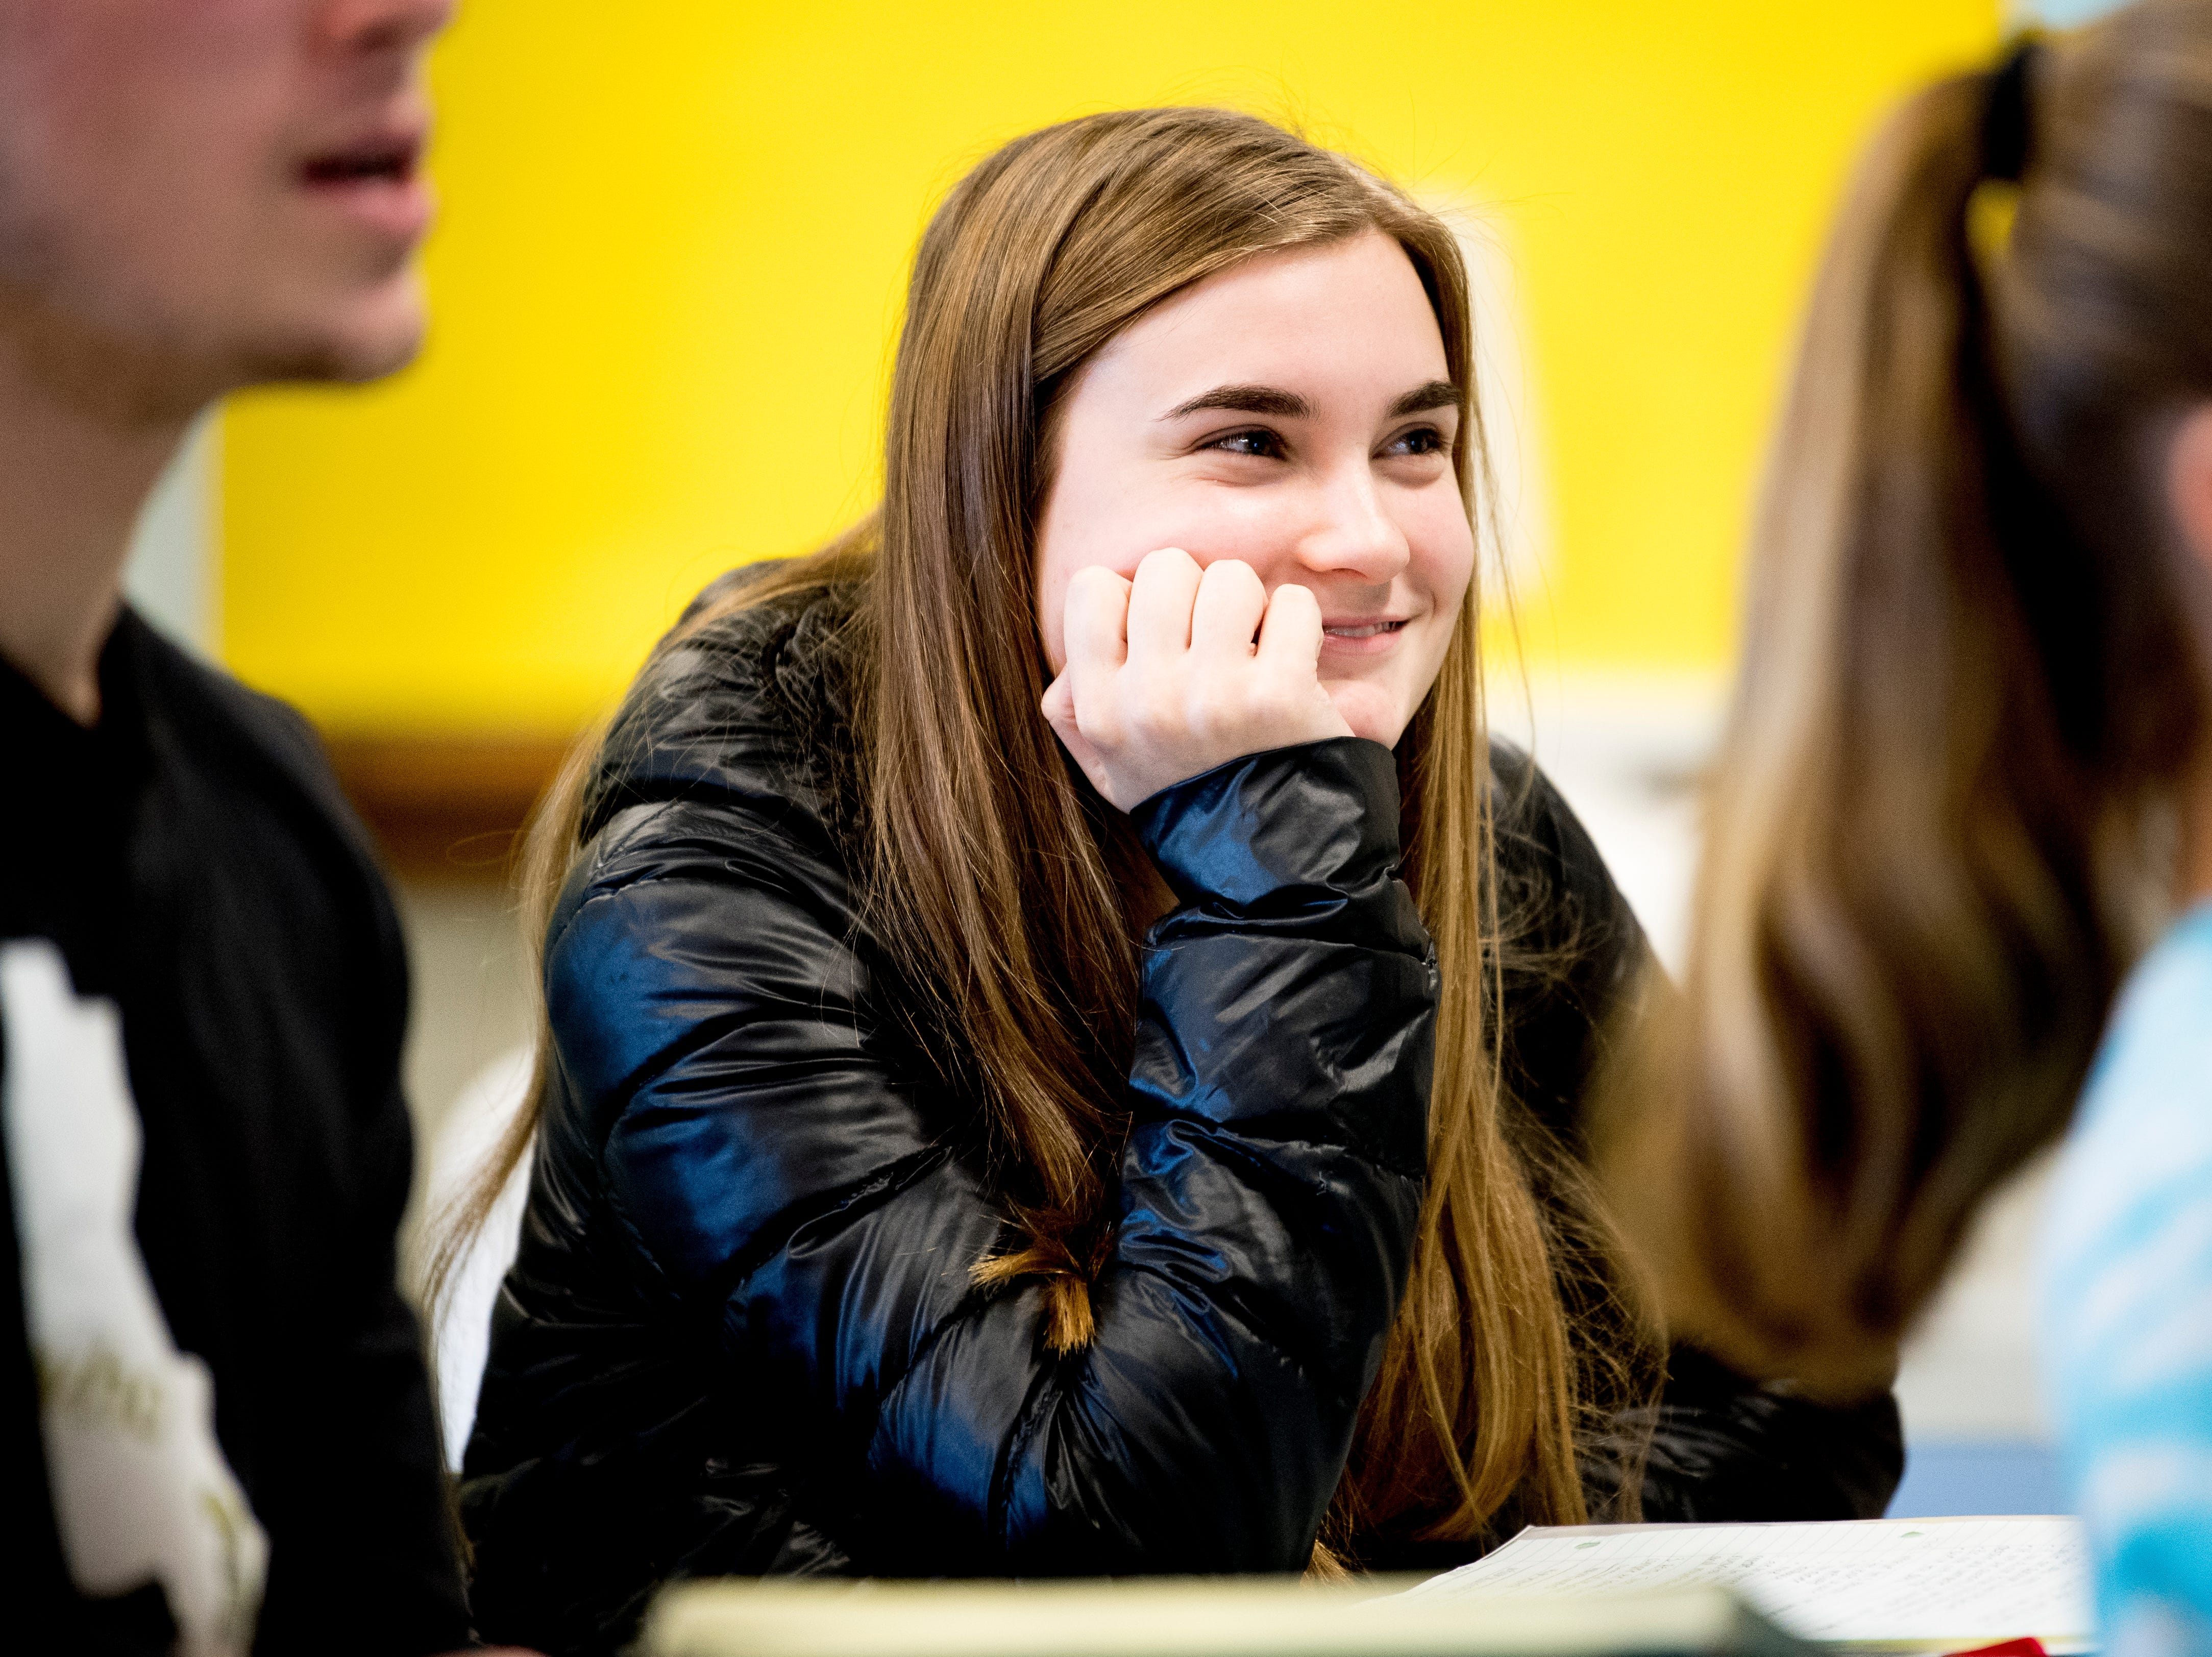 Maryville senior Maemae smiles during Anita Crook's medical therapeutics class at Maryville High School in Maryville, Tennessee, on Friday, January 11, 2019. More time with teachers as well as time to study and work on homework are some of the benefits students enjoy when on block schedules.